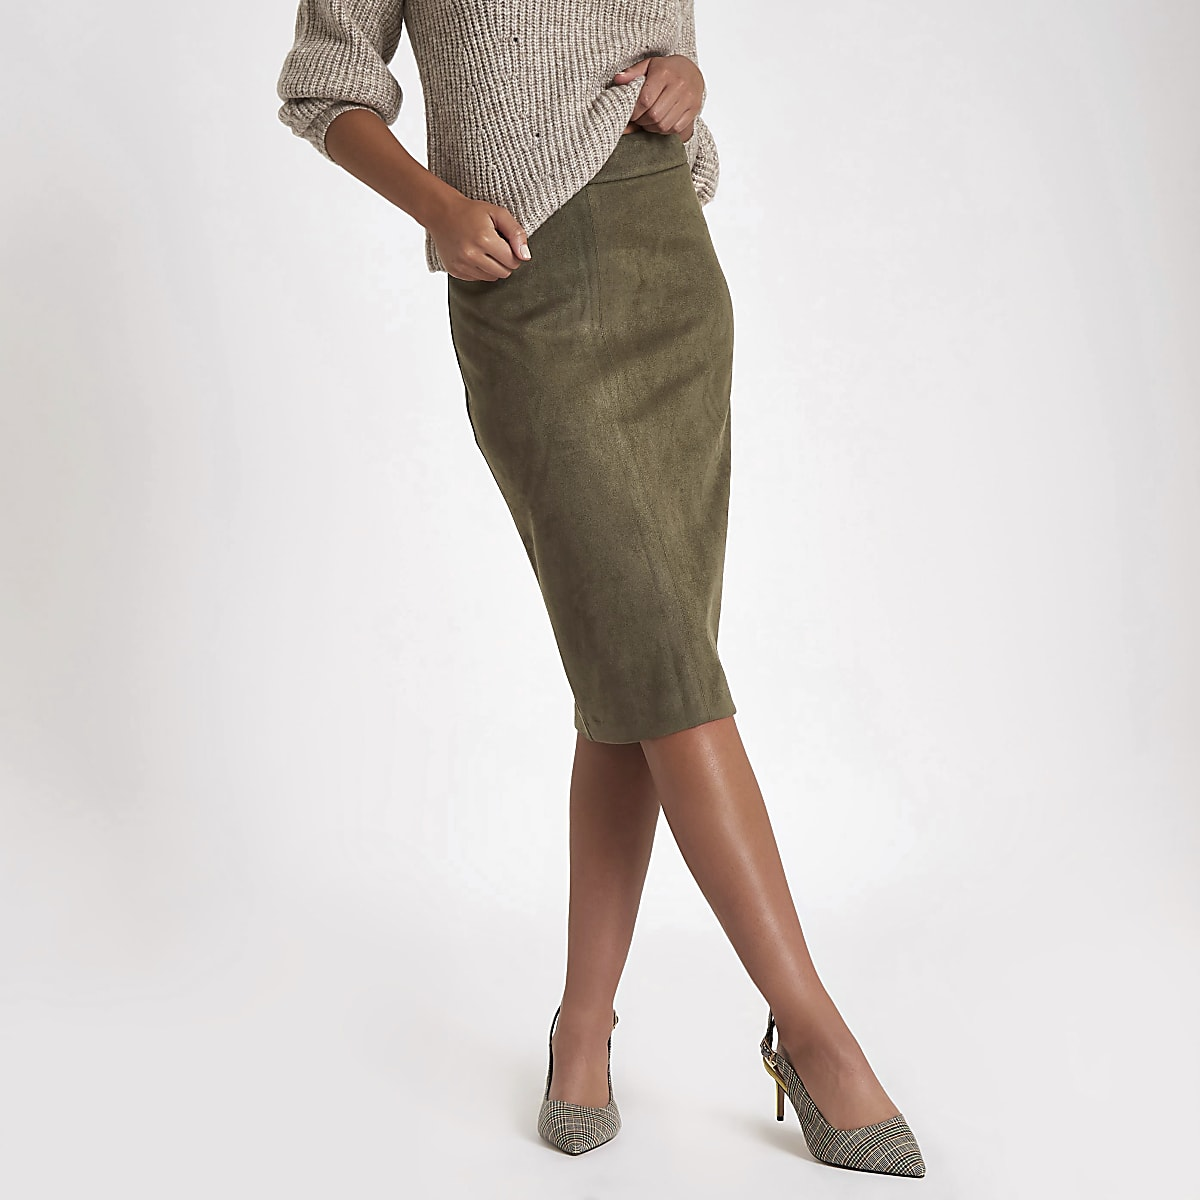 dc53e8665 Khaki faux suede pencil skirt - Midi Skirts - Skirts - women